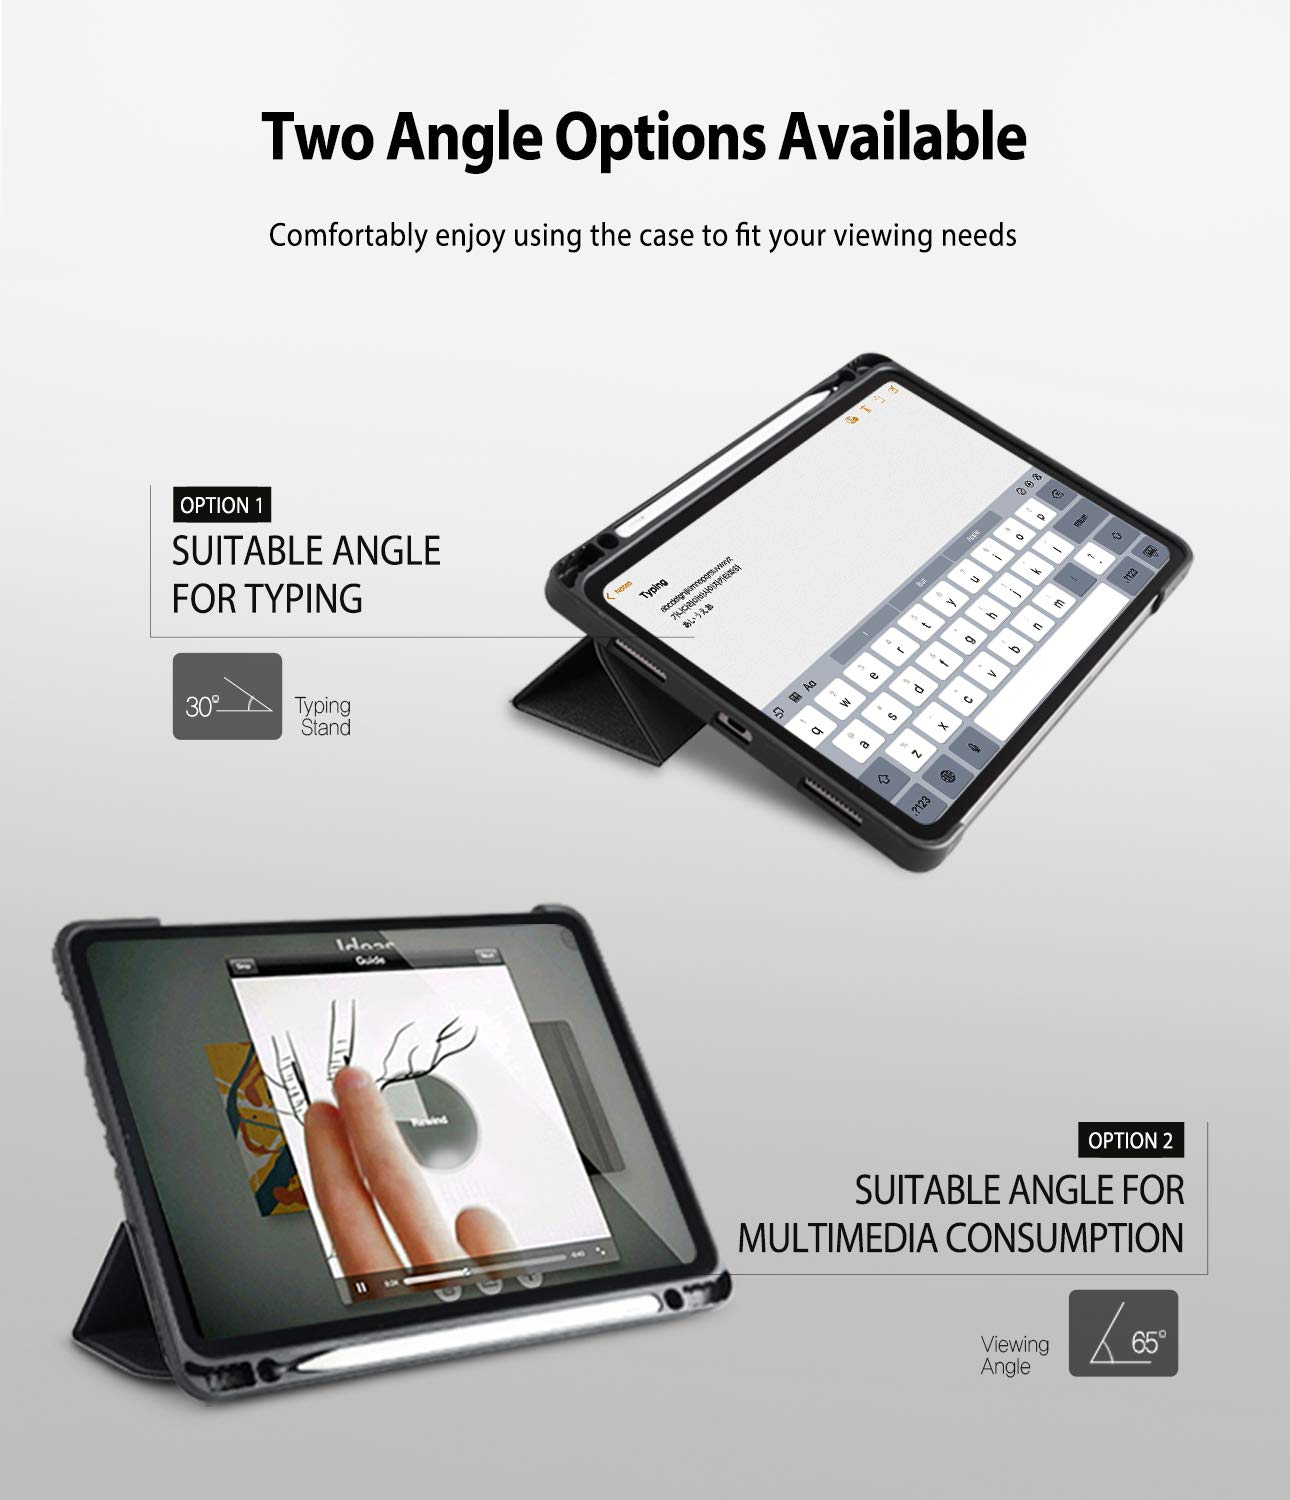 two angle options available